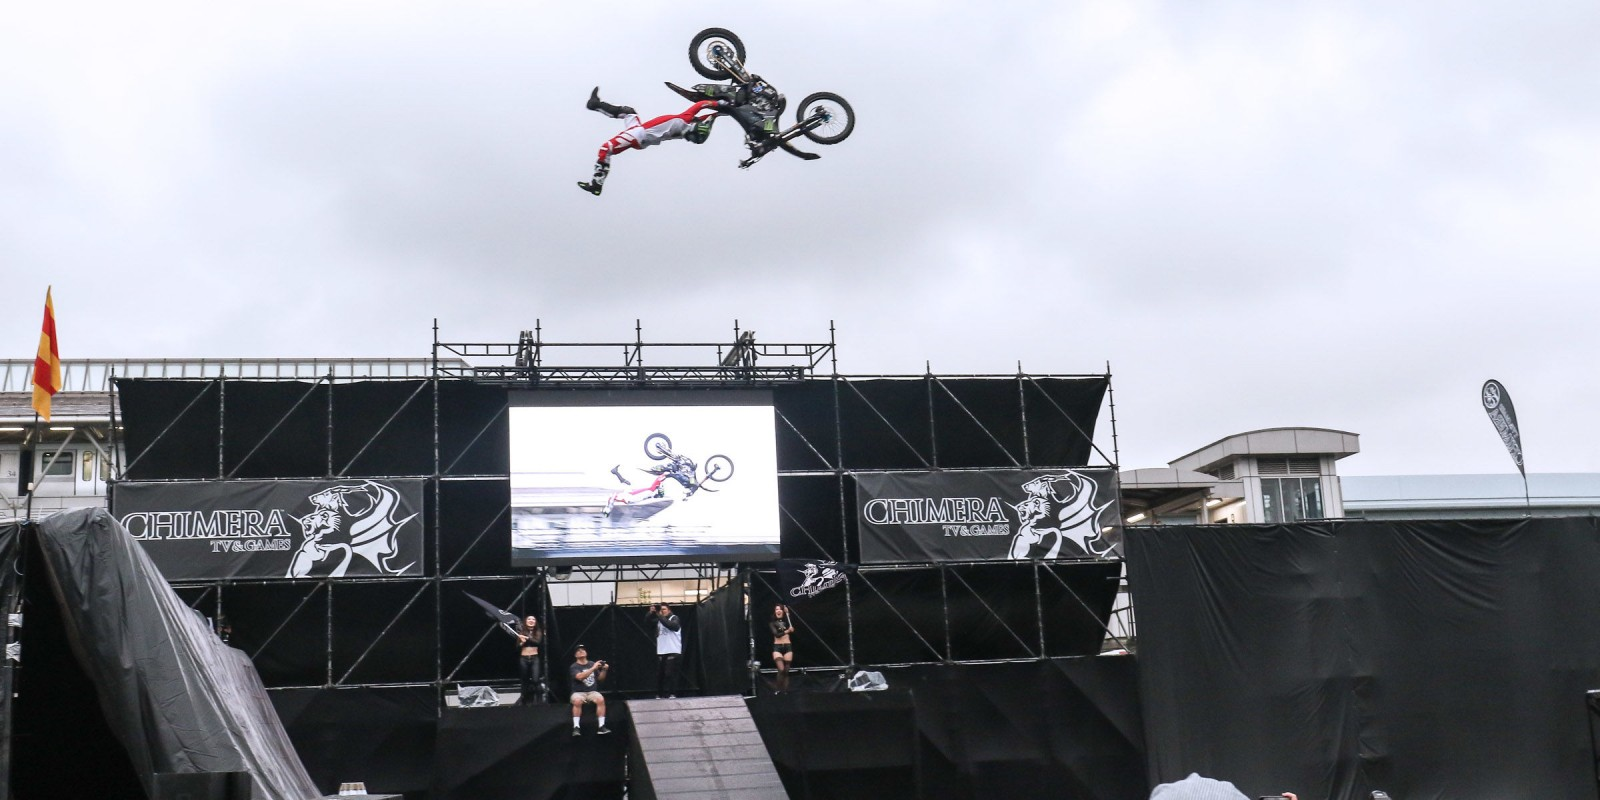 Taka Higashino at the 2017 FMX of Odaiba